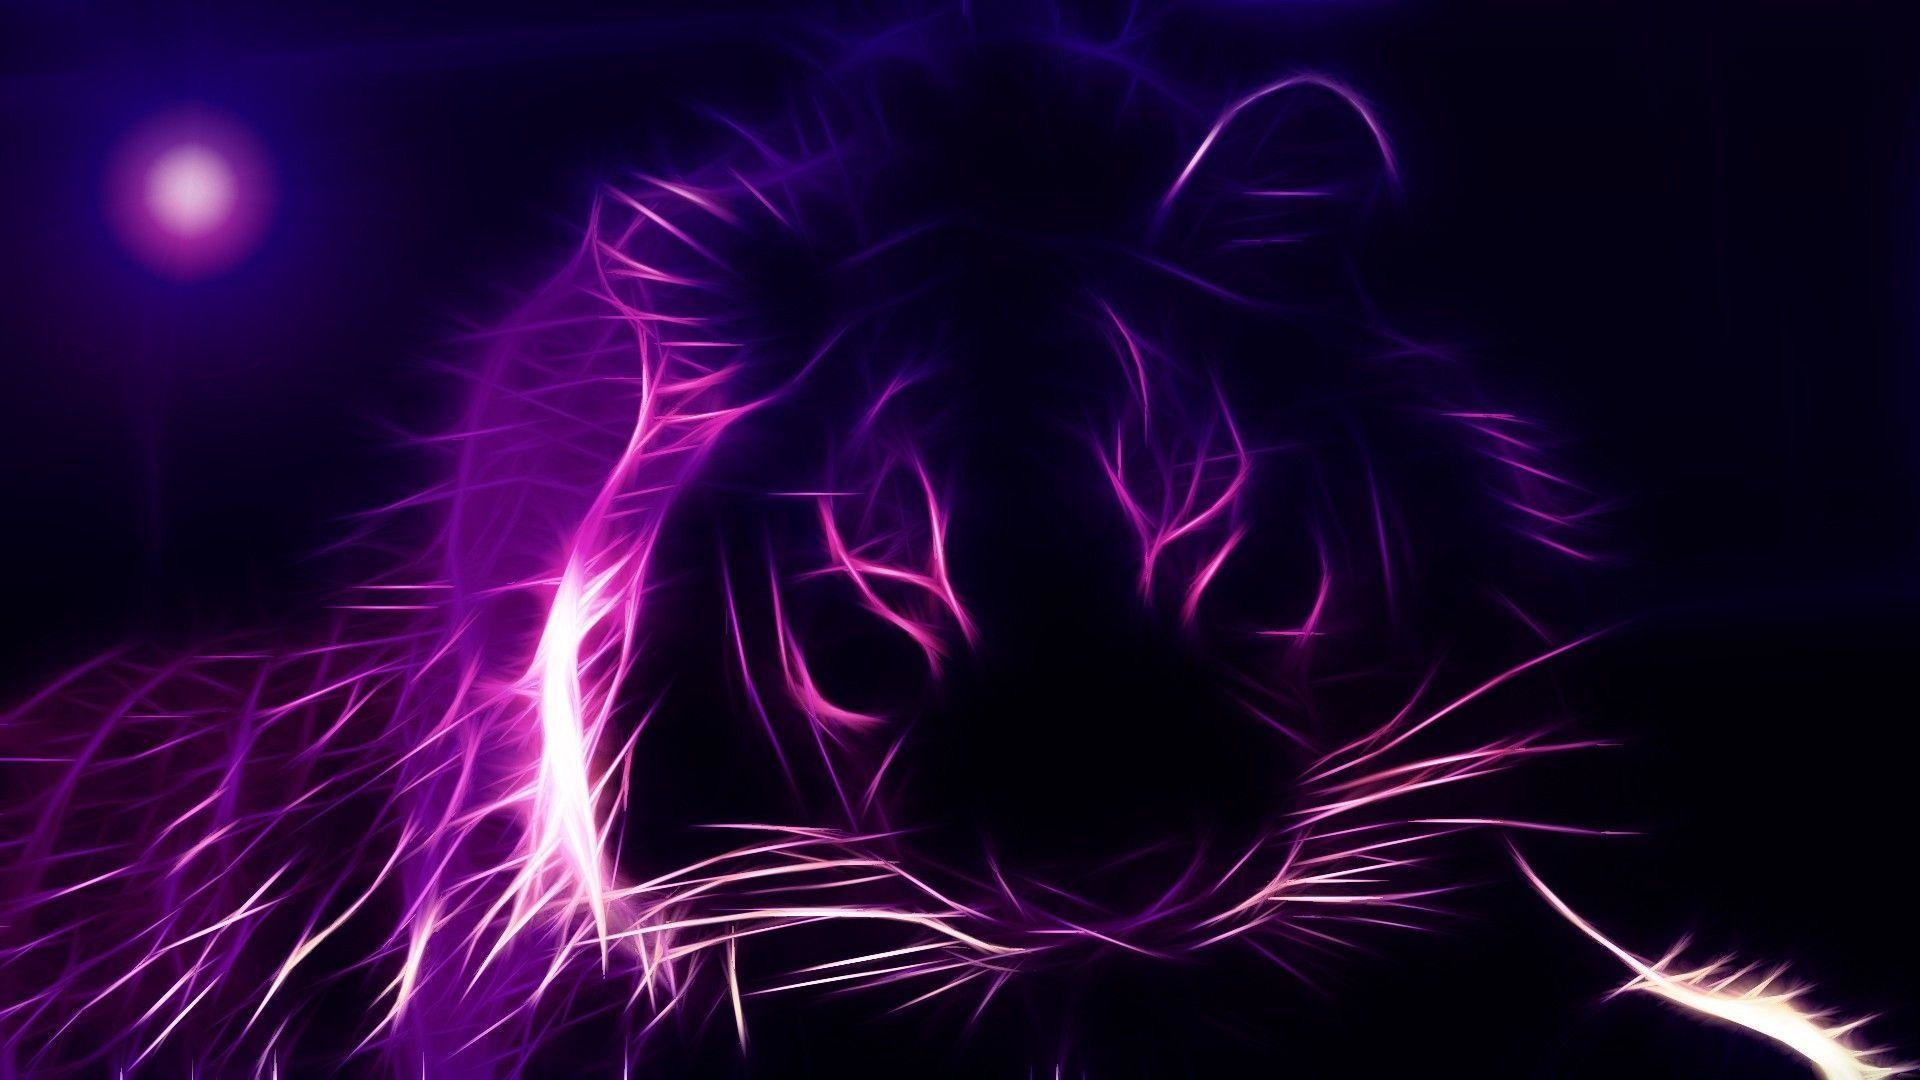 3d Parallax Wallpaper - Hd Wall Paper Purple , HD Wallpaper & Backgrounds